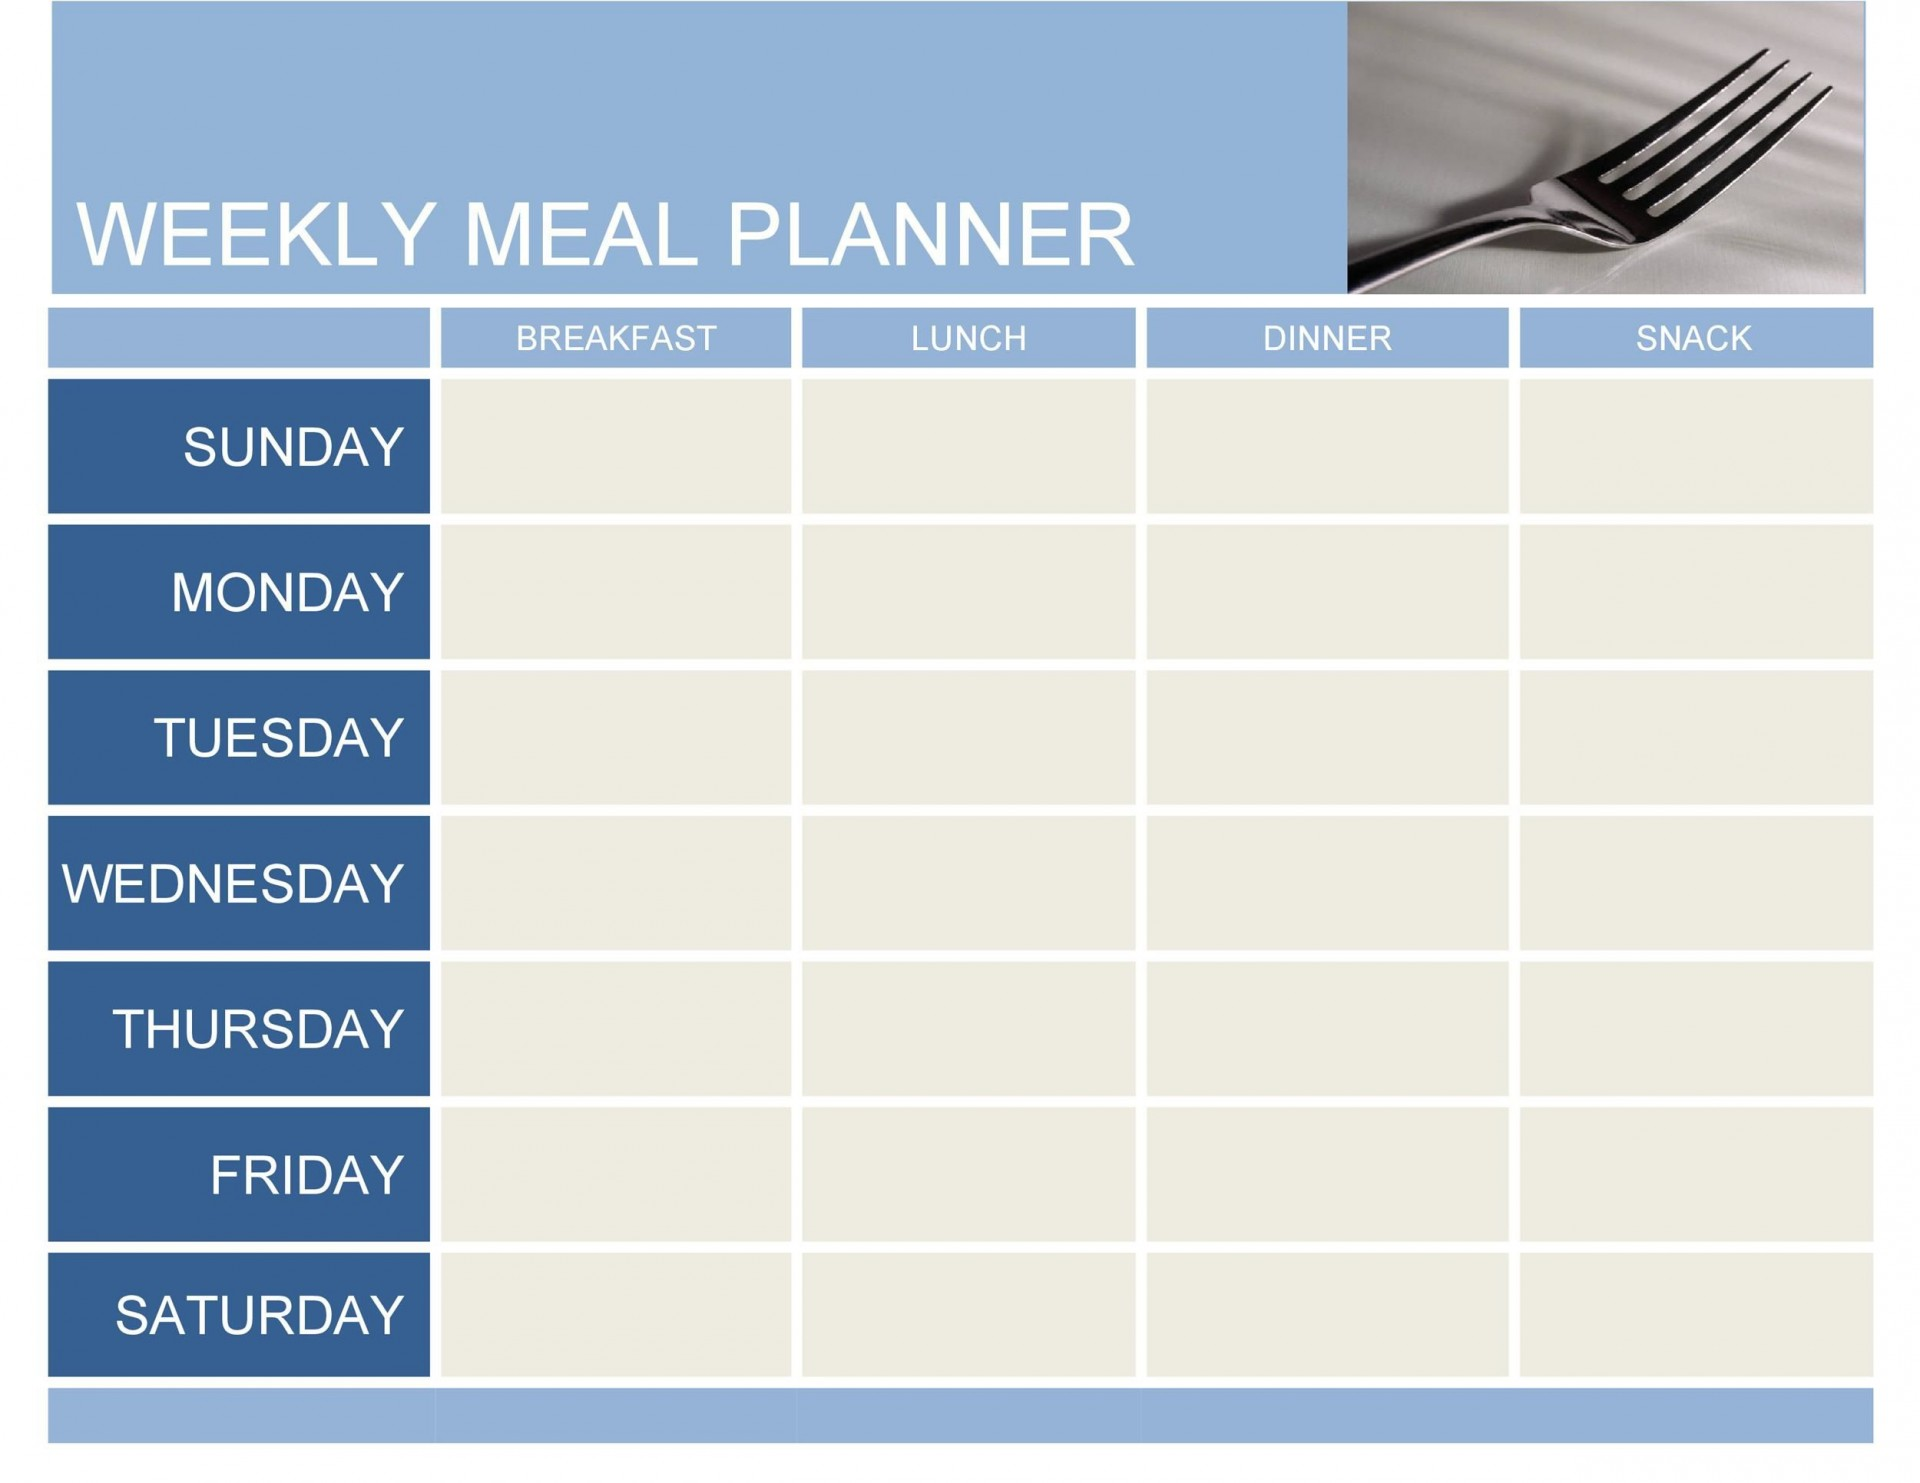 007 Marvelou Excel Weekly Meal Planner Template Image  With Grocery List Downloadable1920